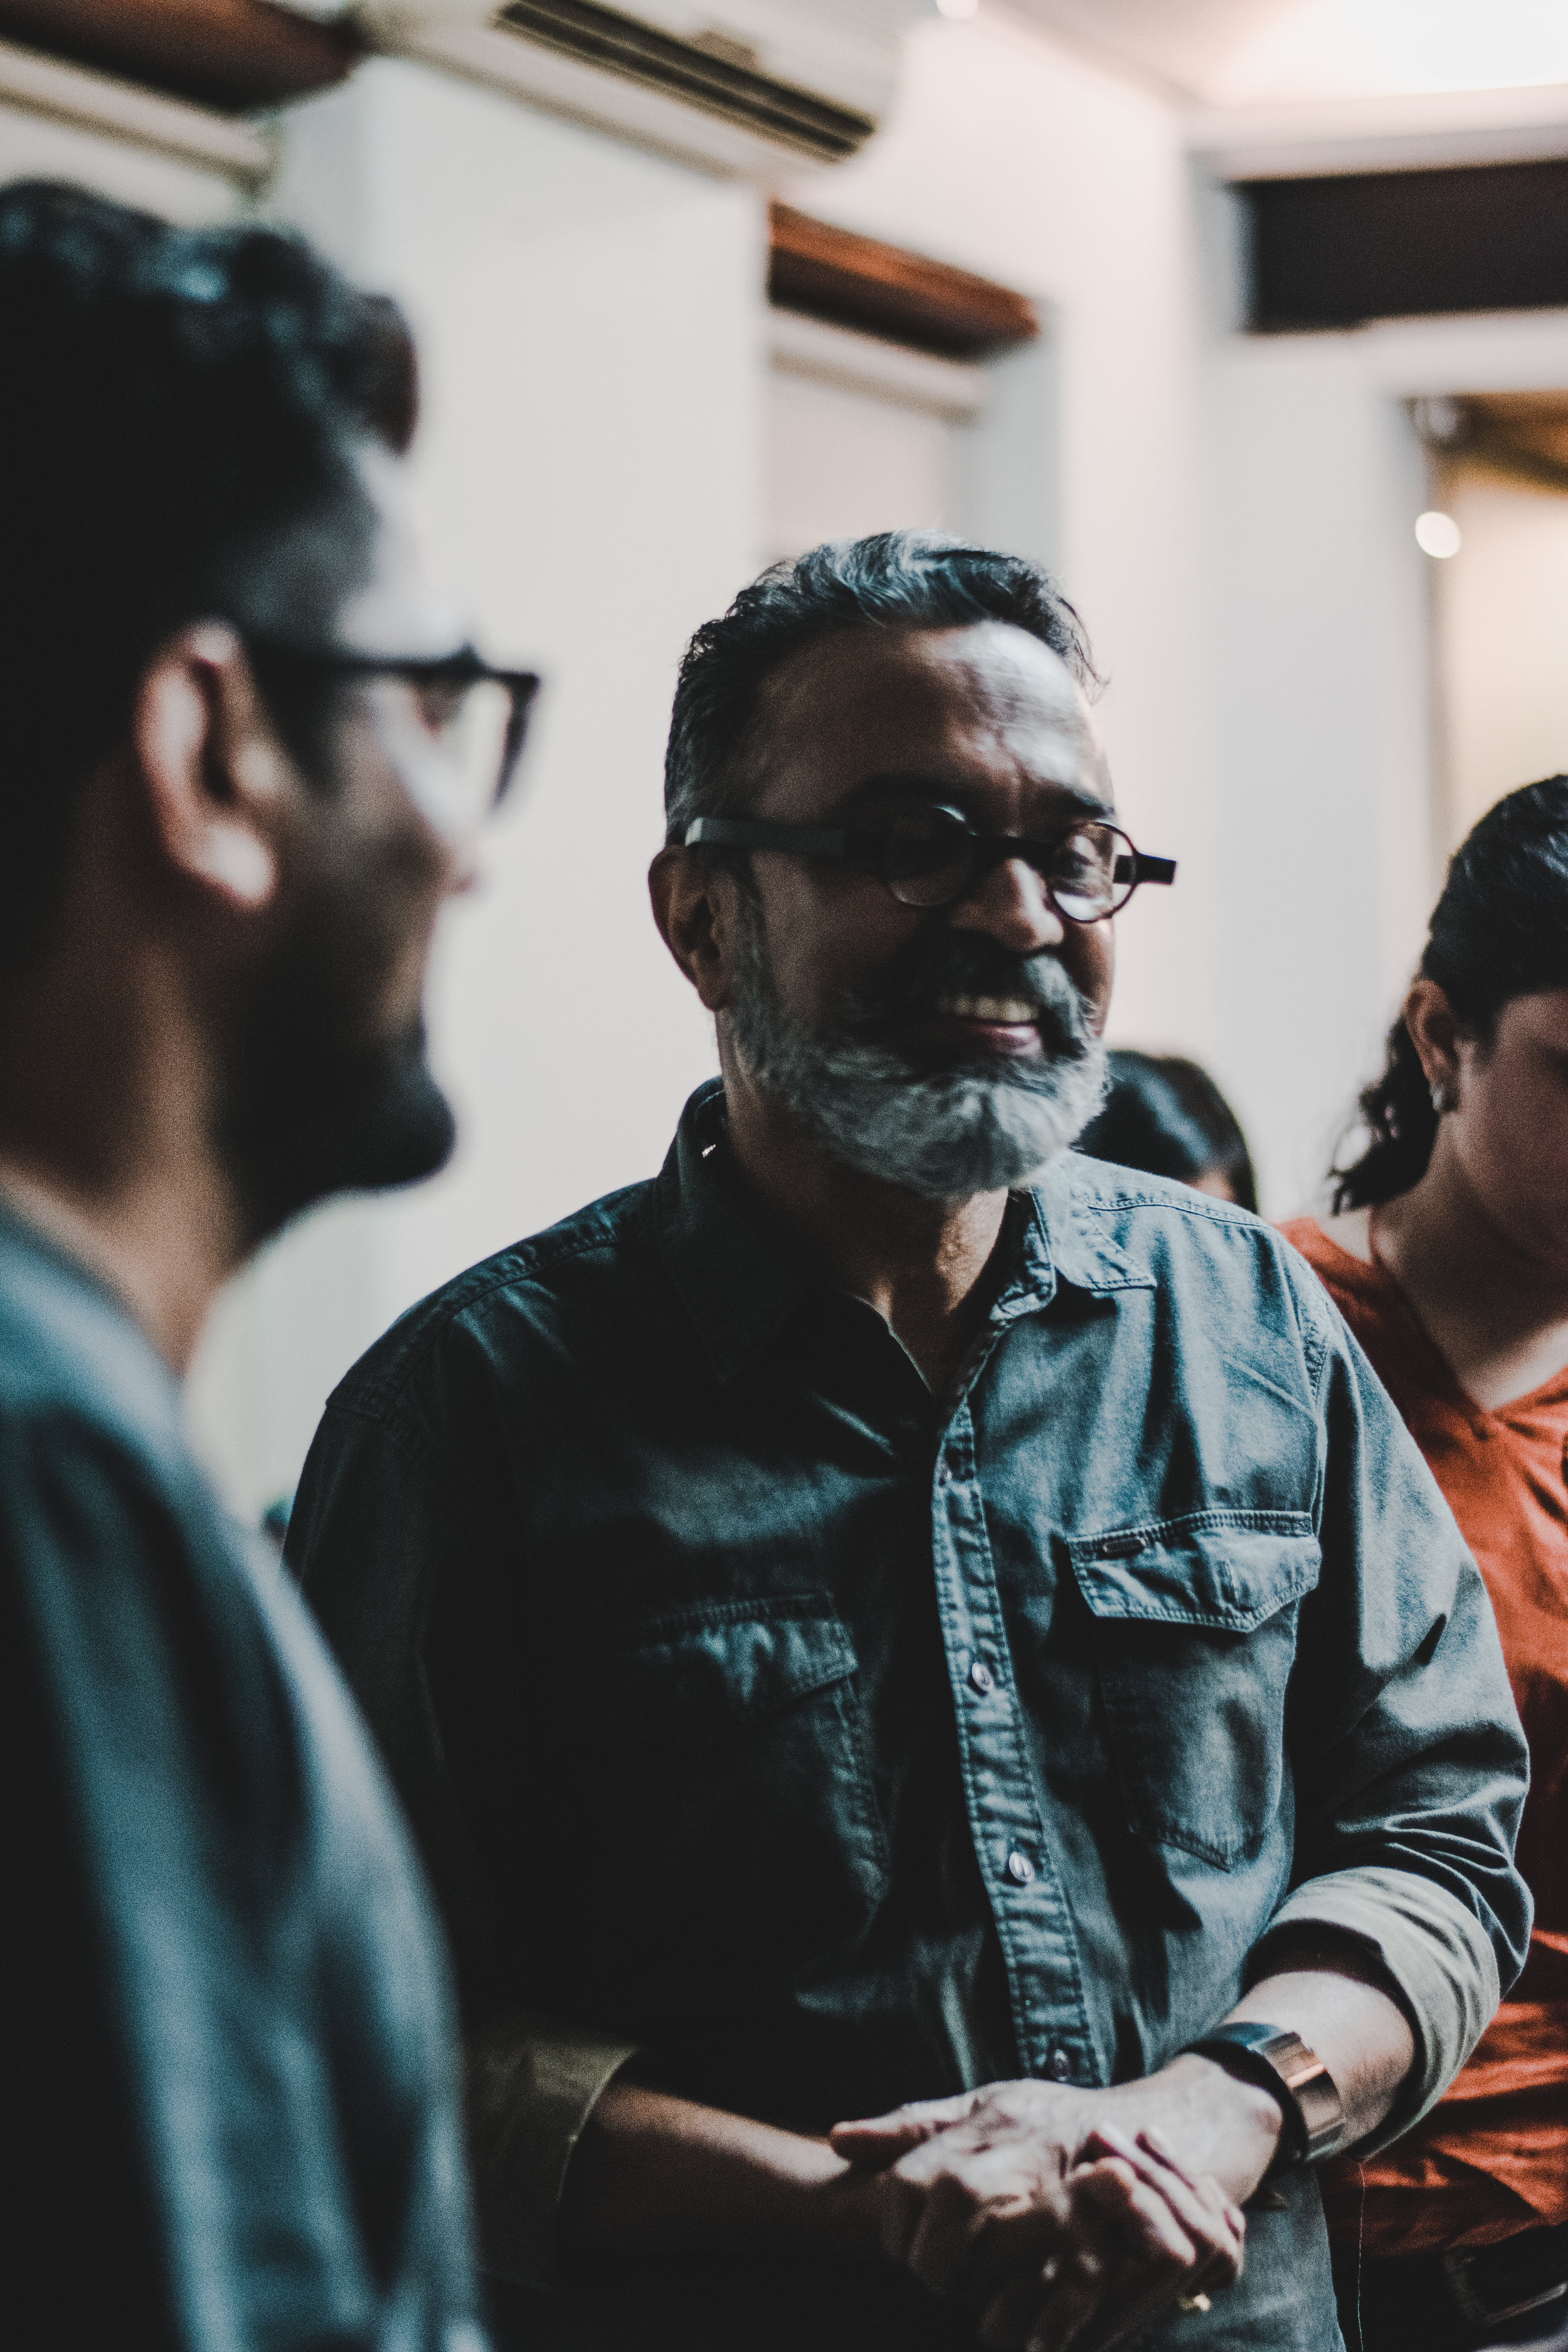 Sunil Gawde (Father), known to be a constant innovator, on detailing in Contemporary Art